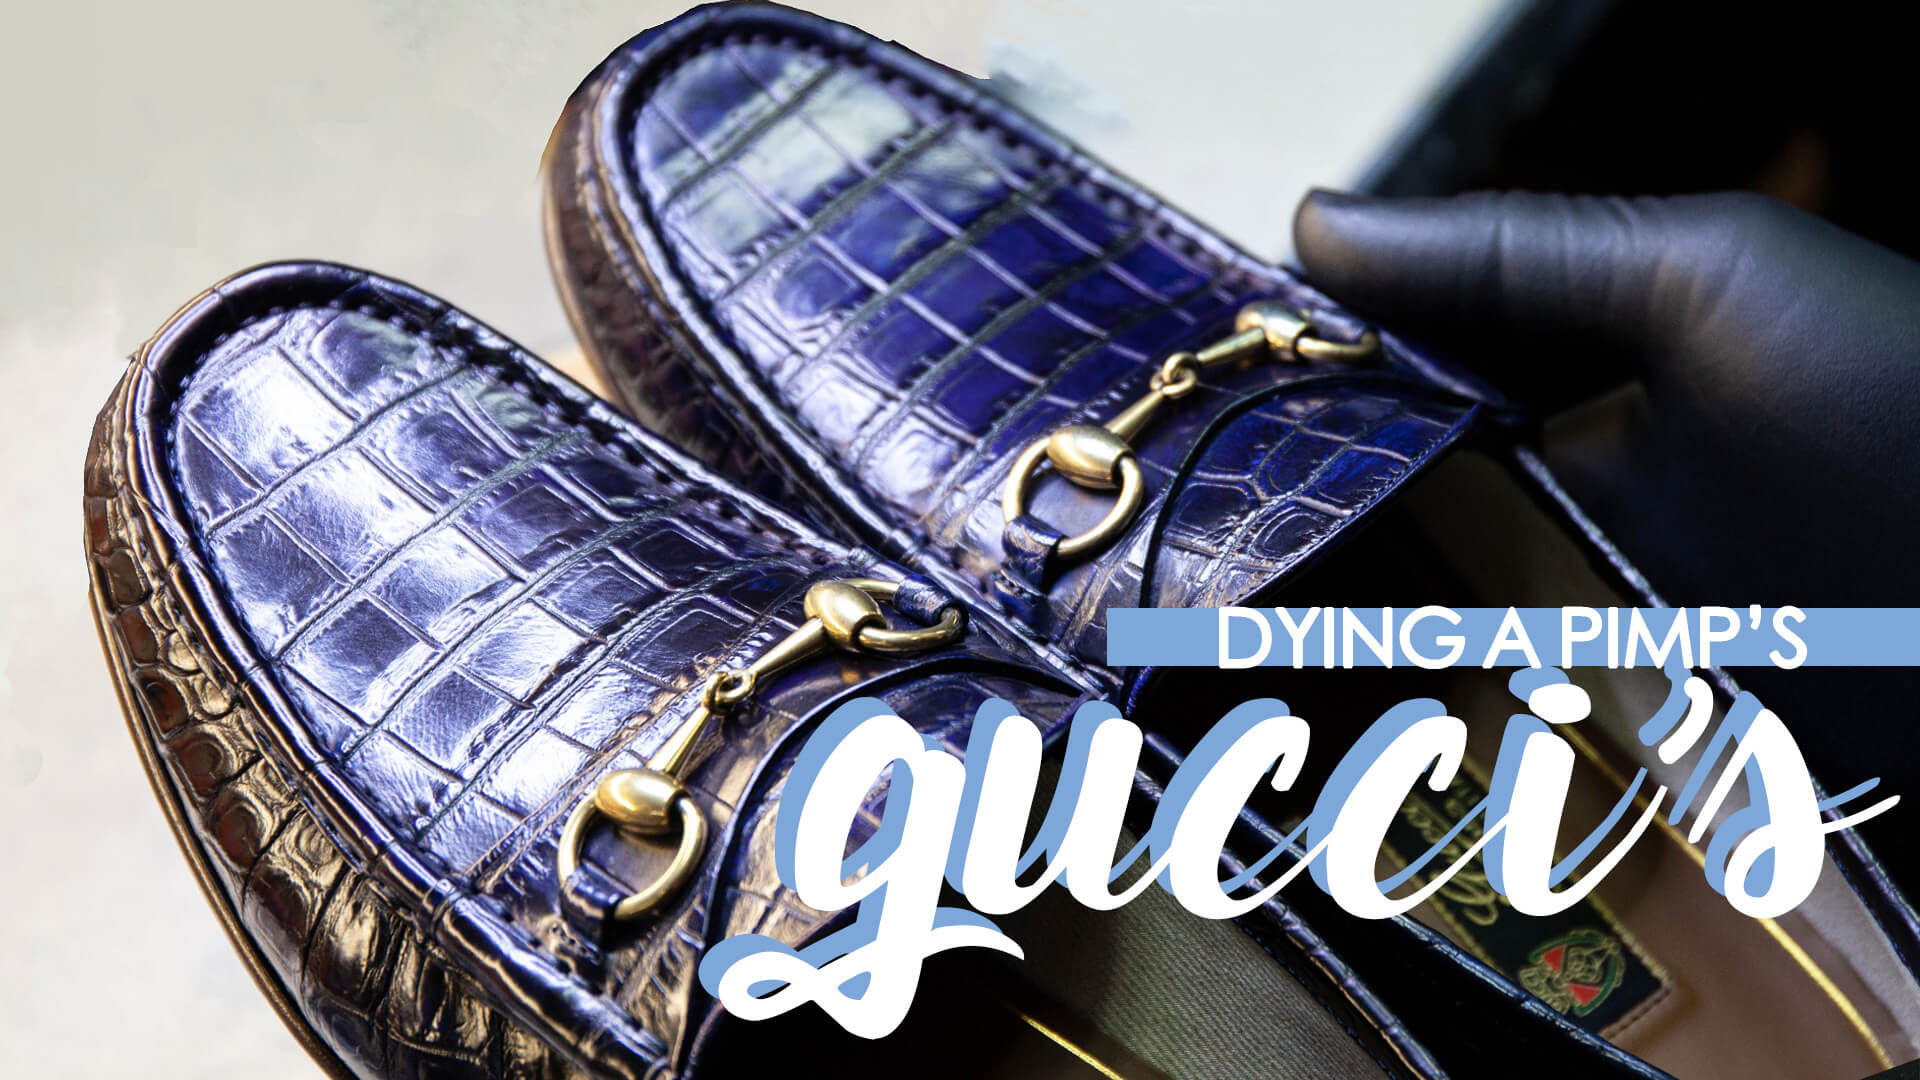 Off Topic: Repairing Gucci Loafers From A PIMP!